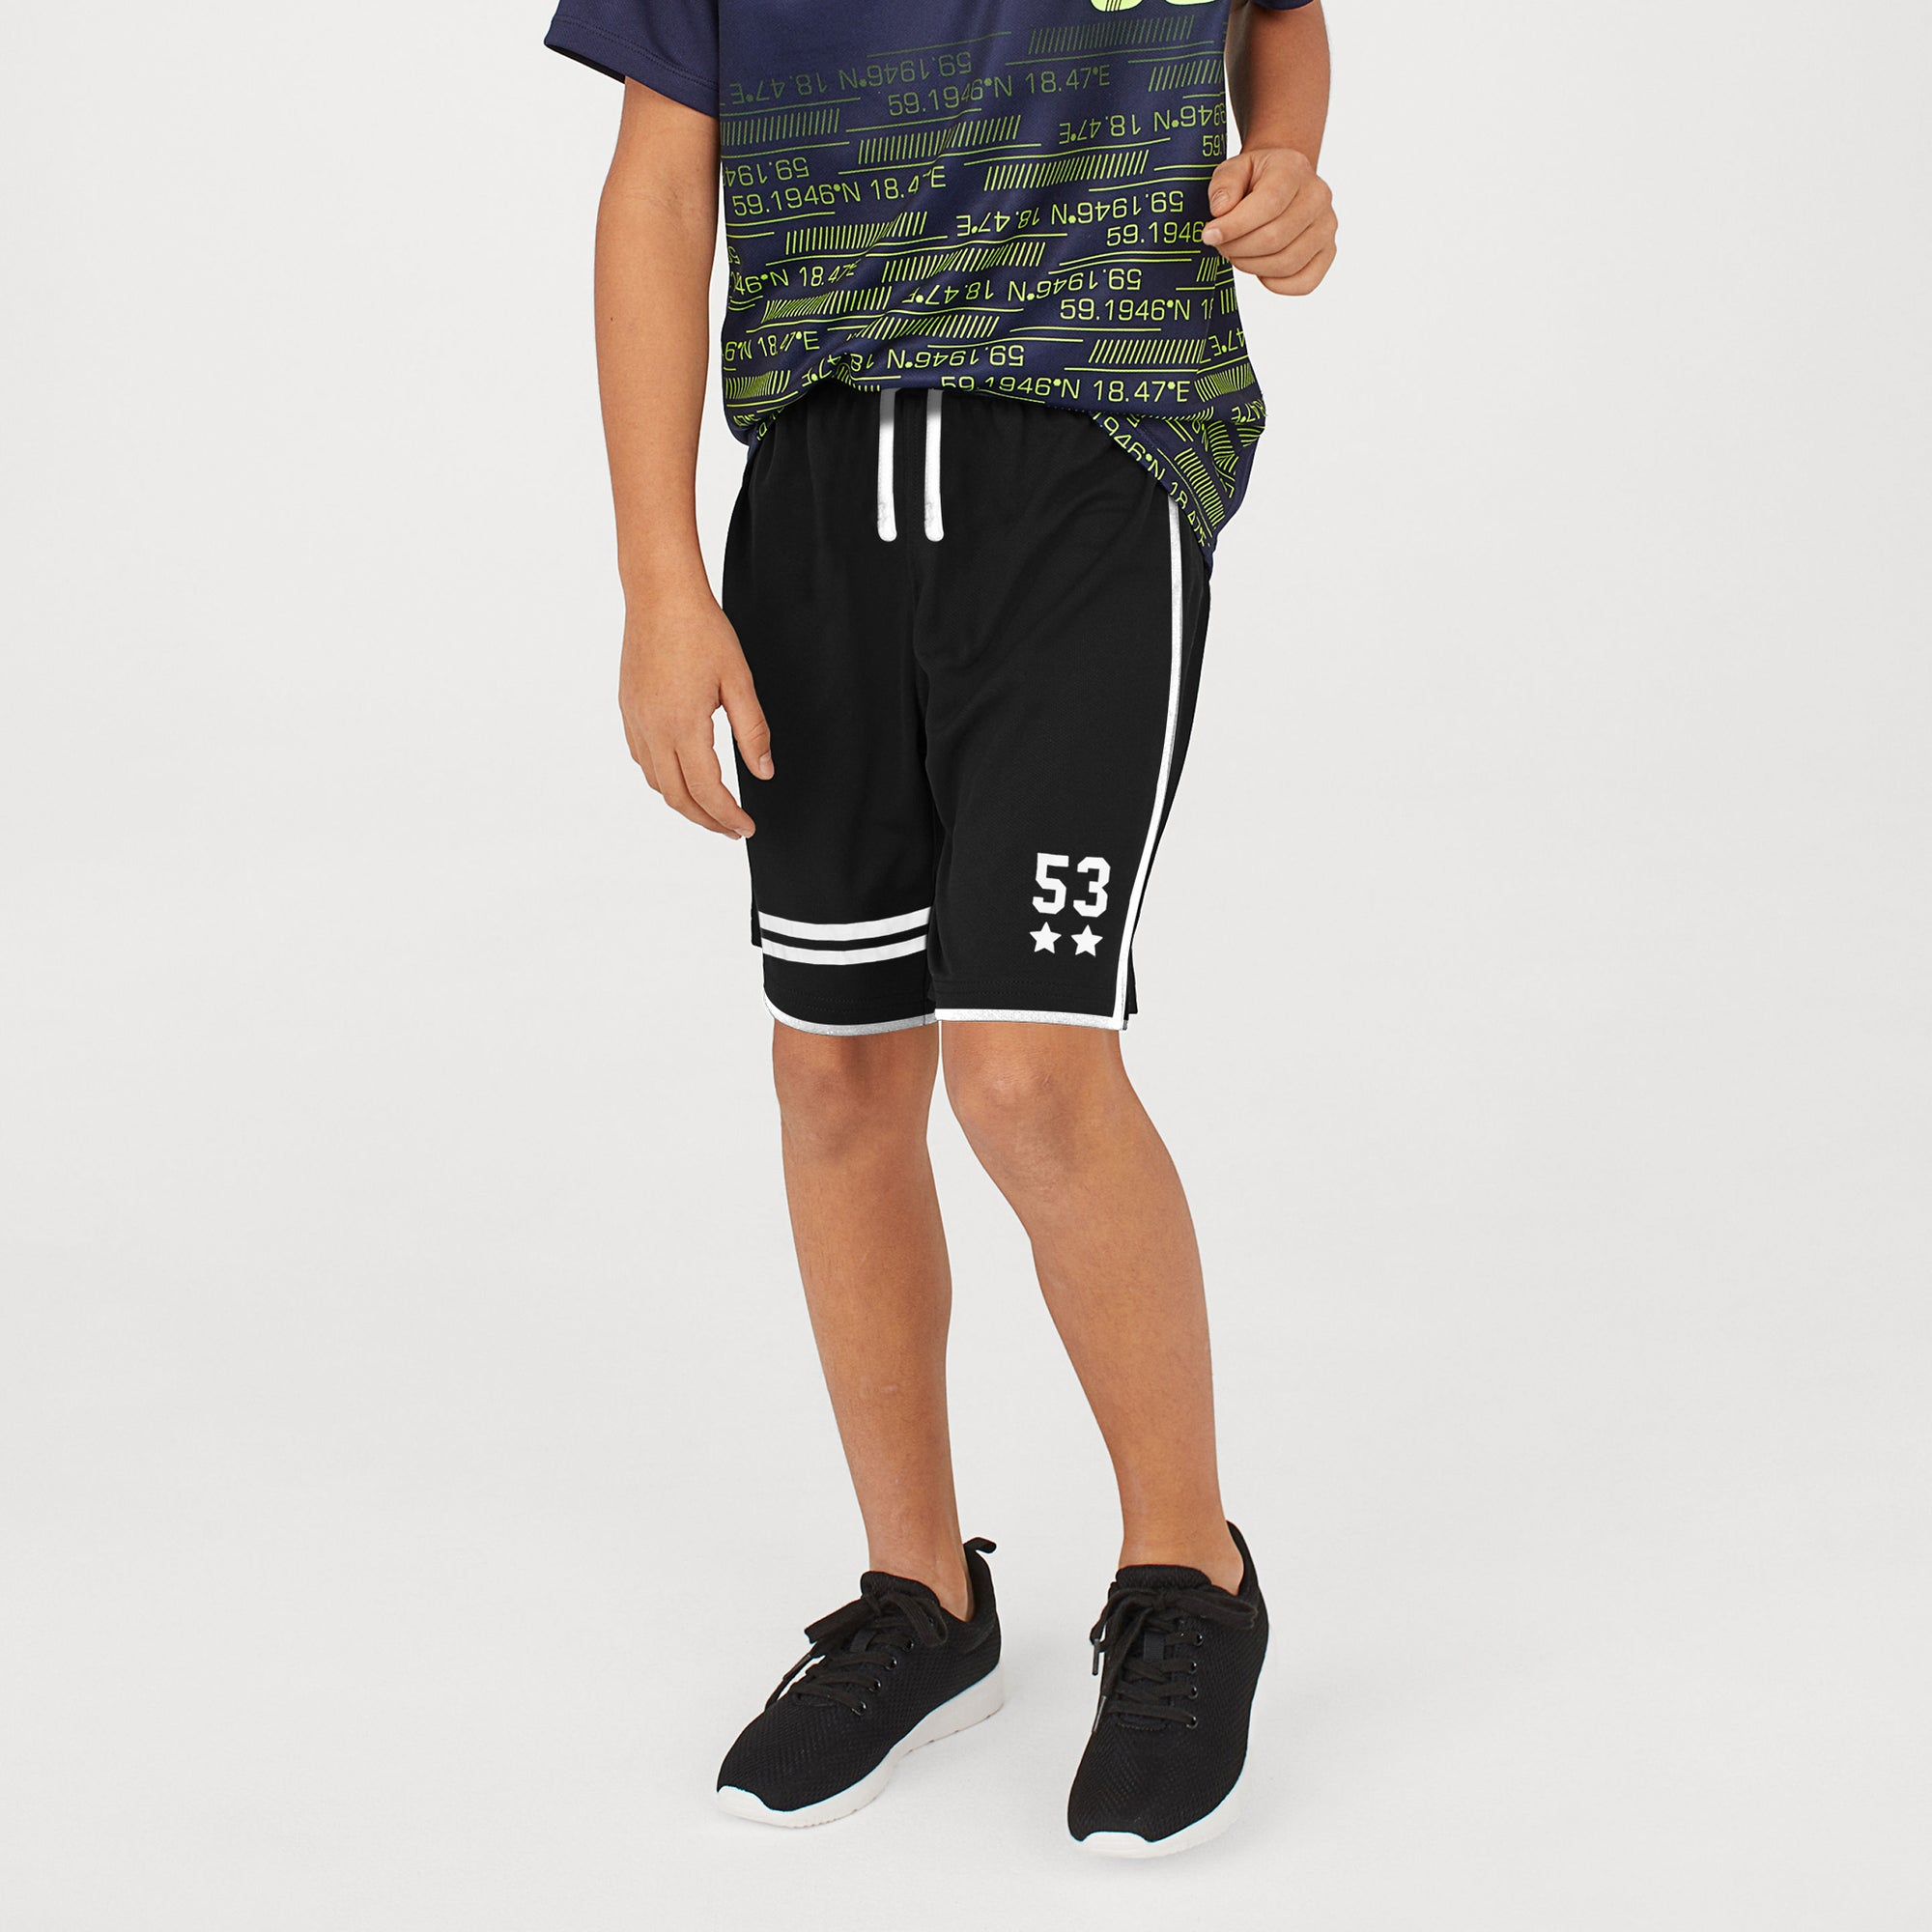 brandsego - Next Sport Short For Boys-Black-BE8259